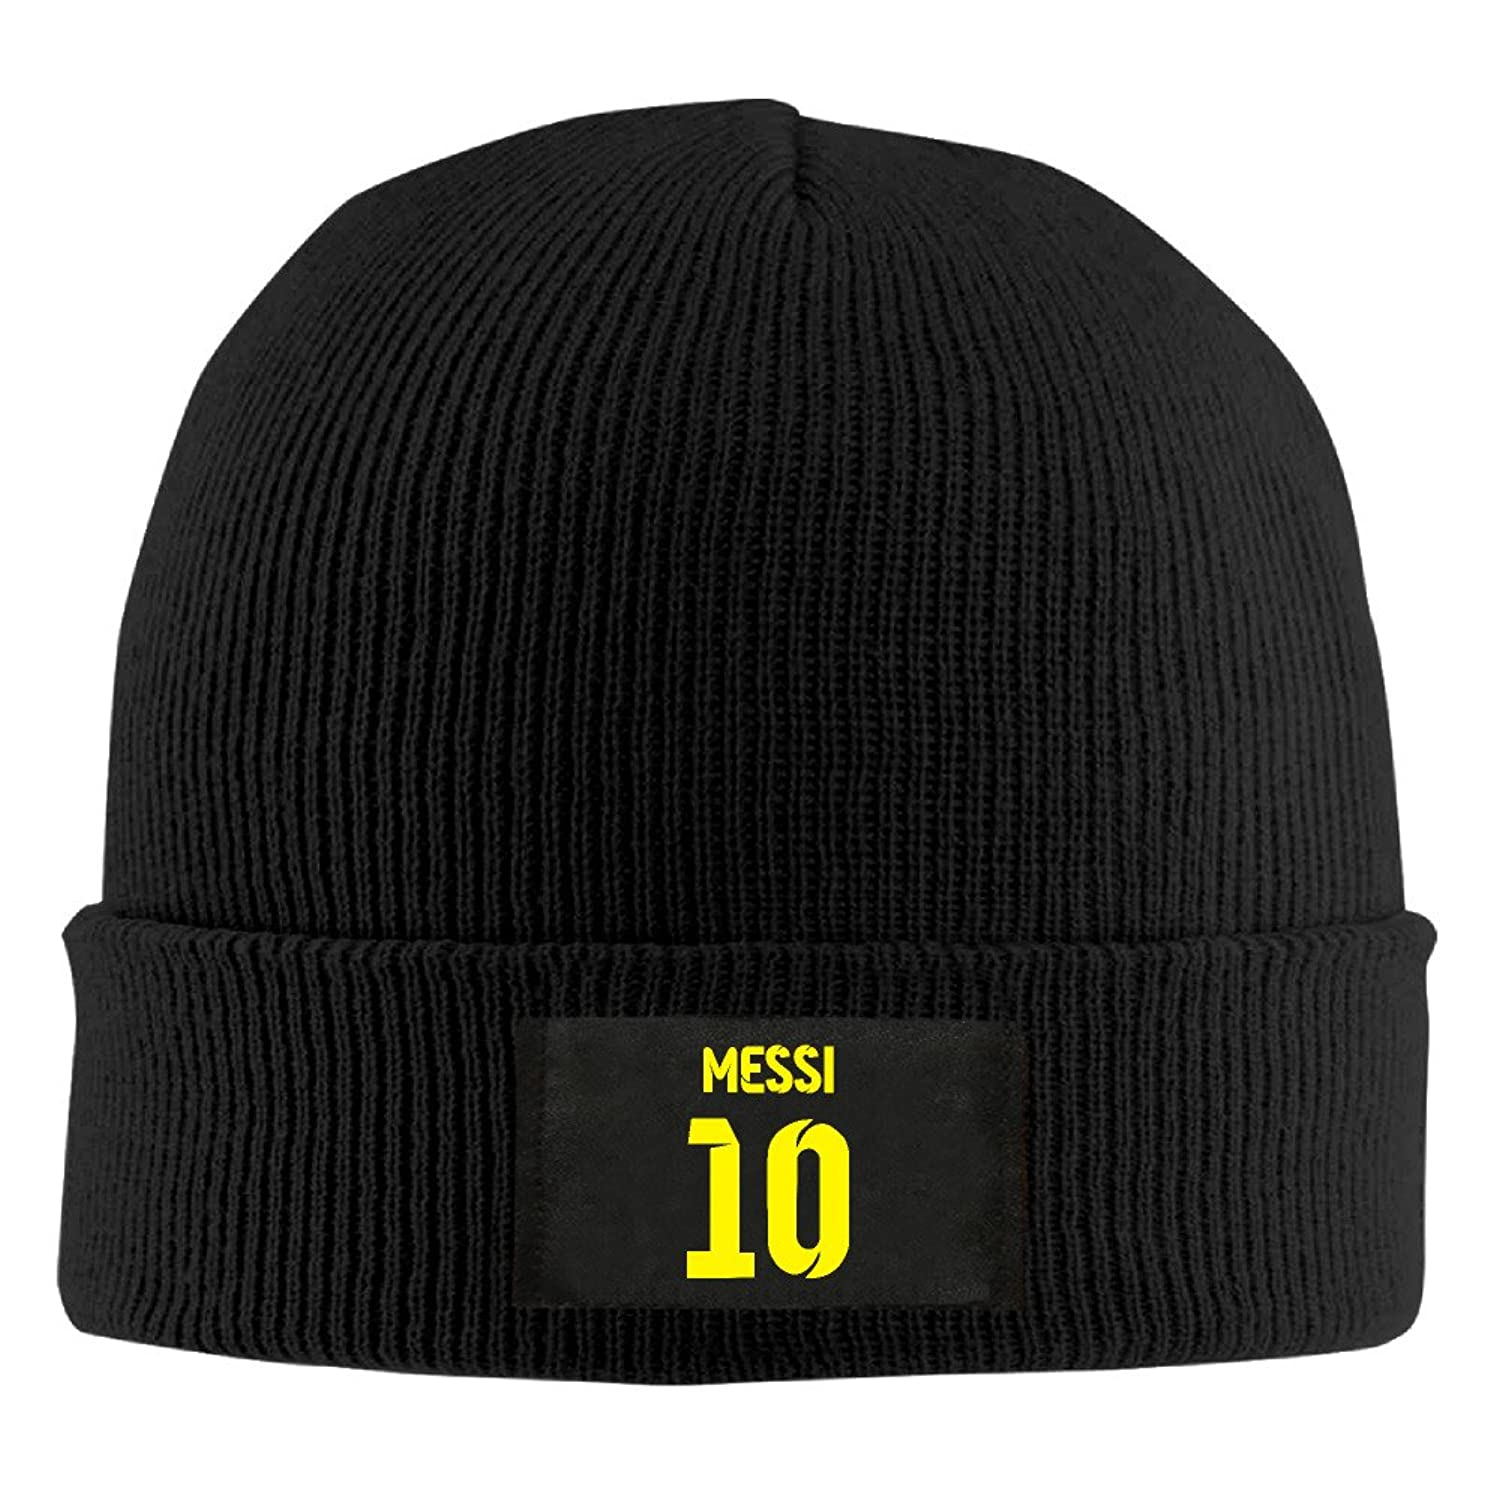 YFLLAY Lionel Messi Number 10 Knit Cap Woolen Hat For Unisex